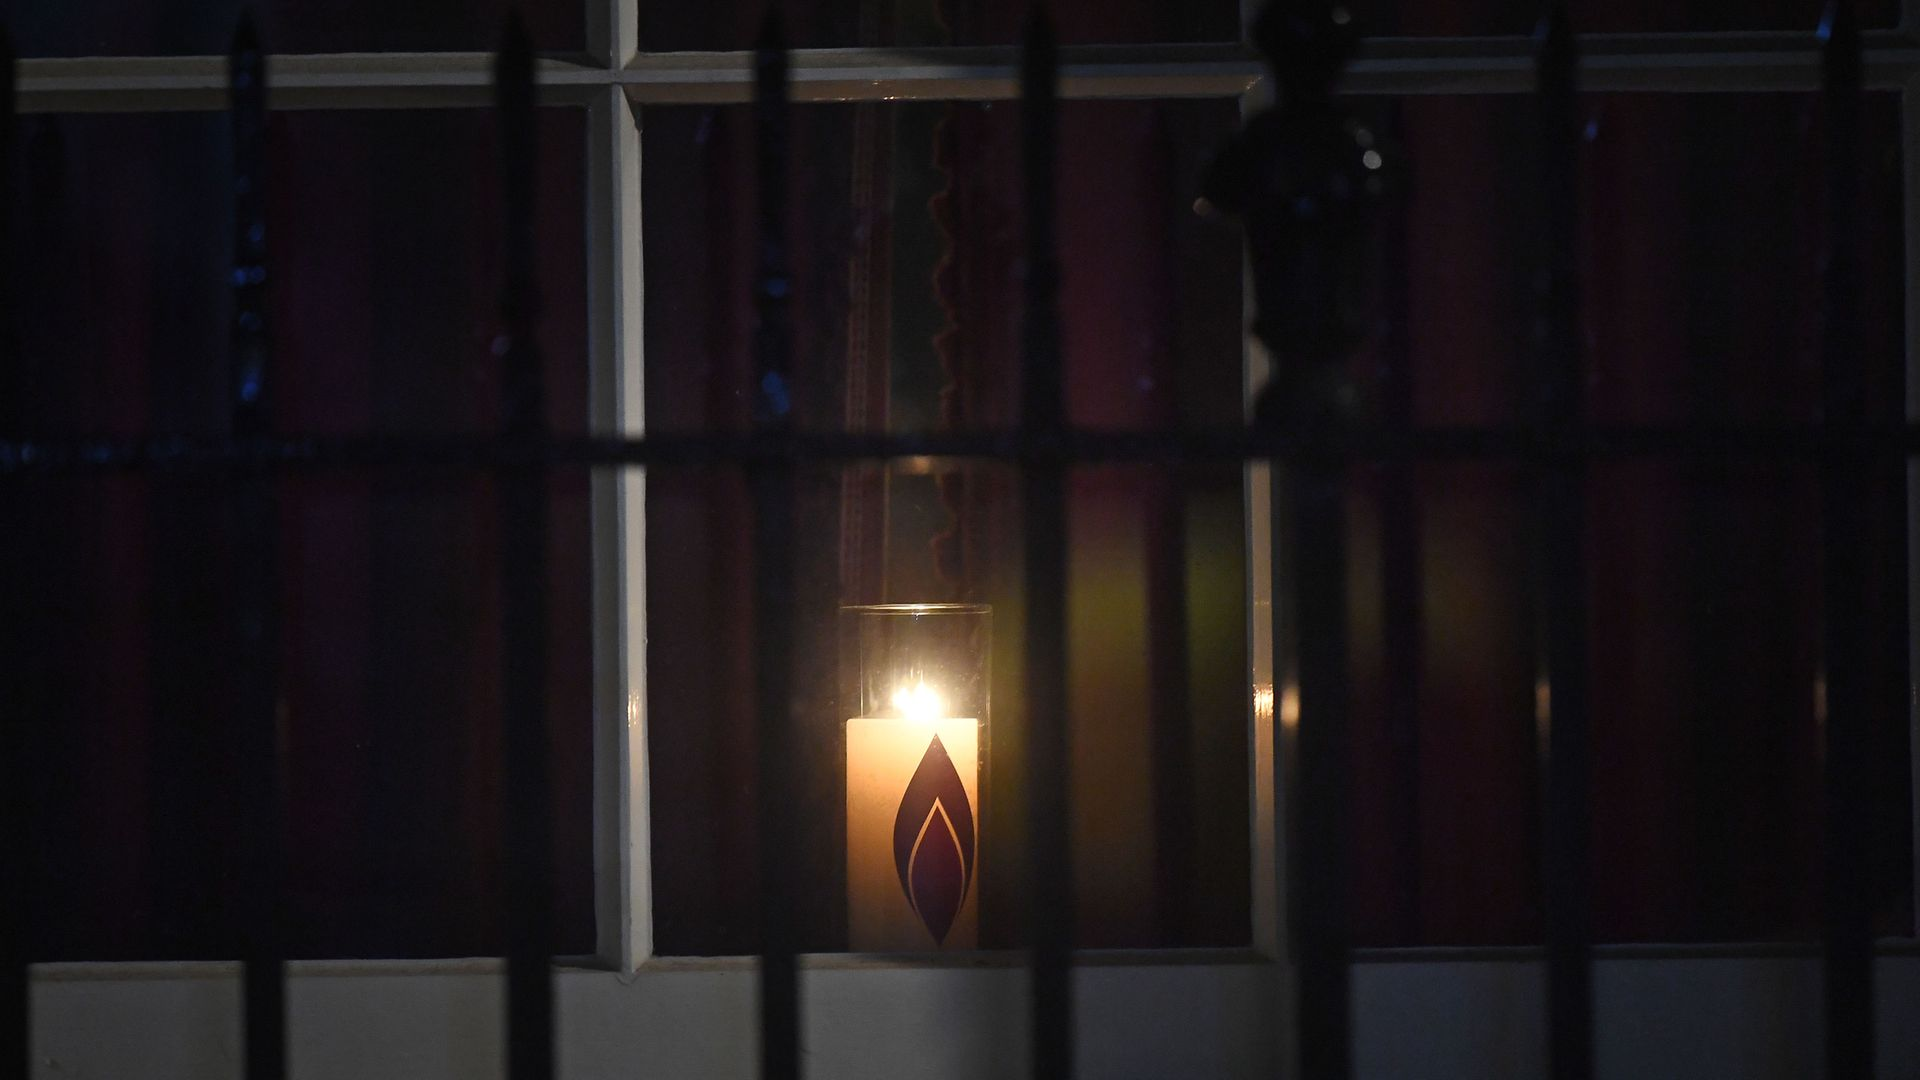 A candle in a window at 10 Downing Street, London, in remembrance of victims of The Holocaust - Credit: PA